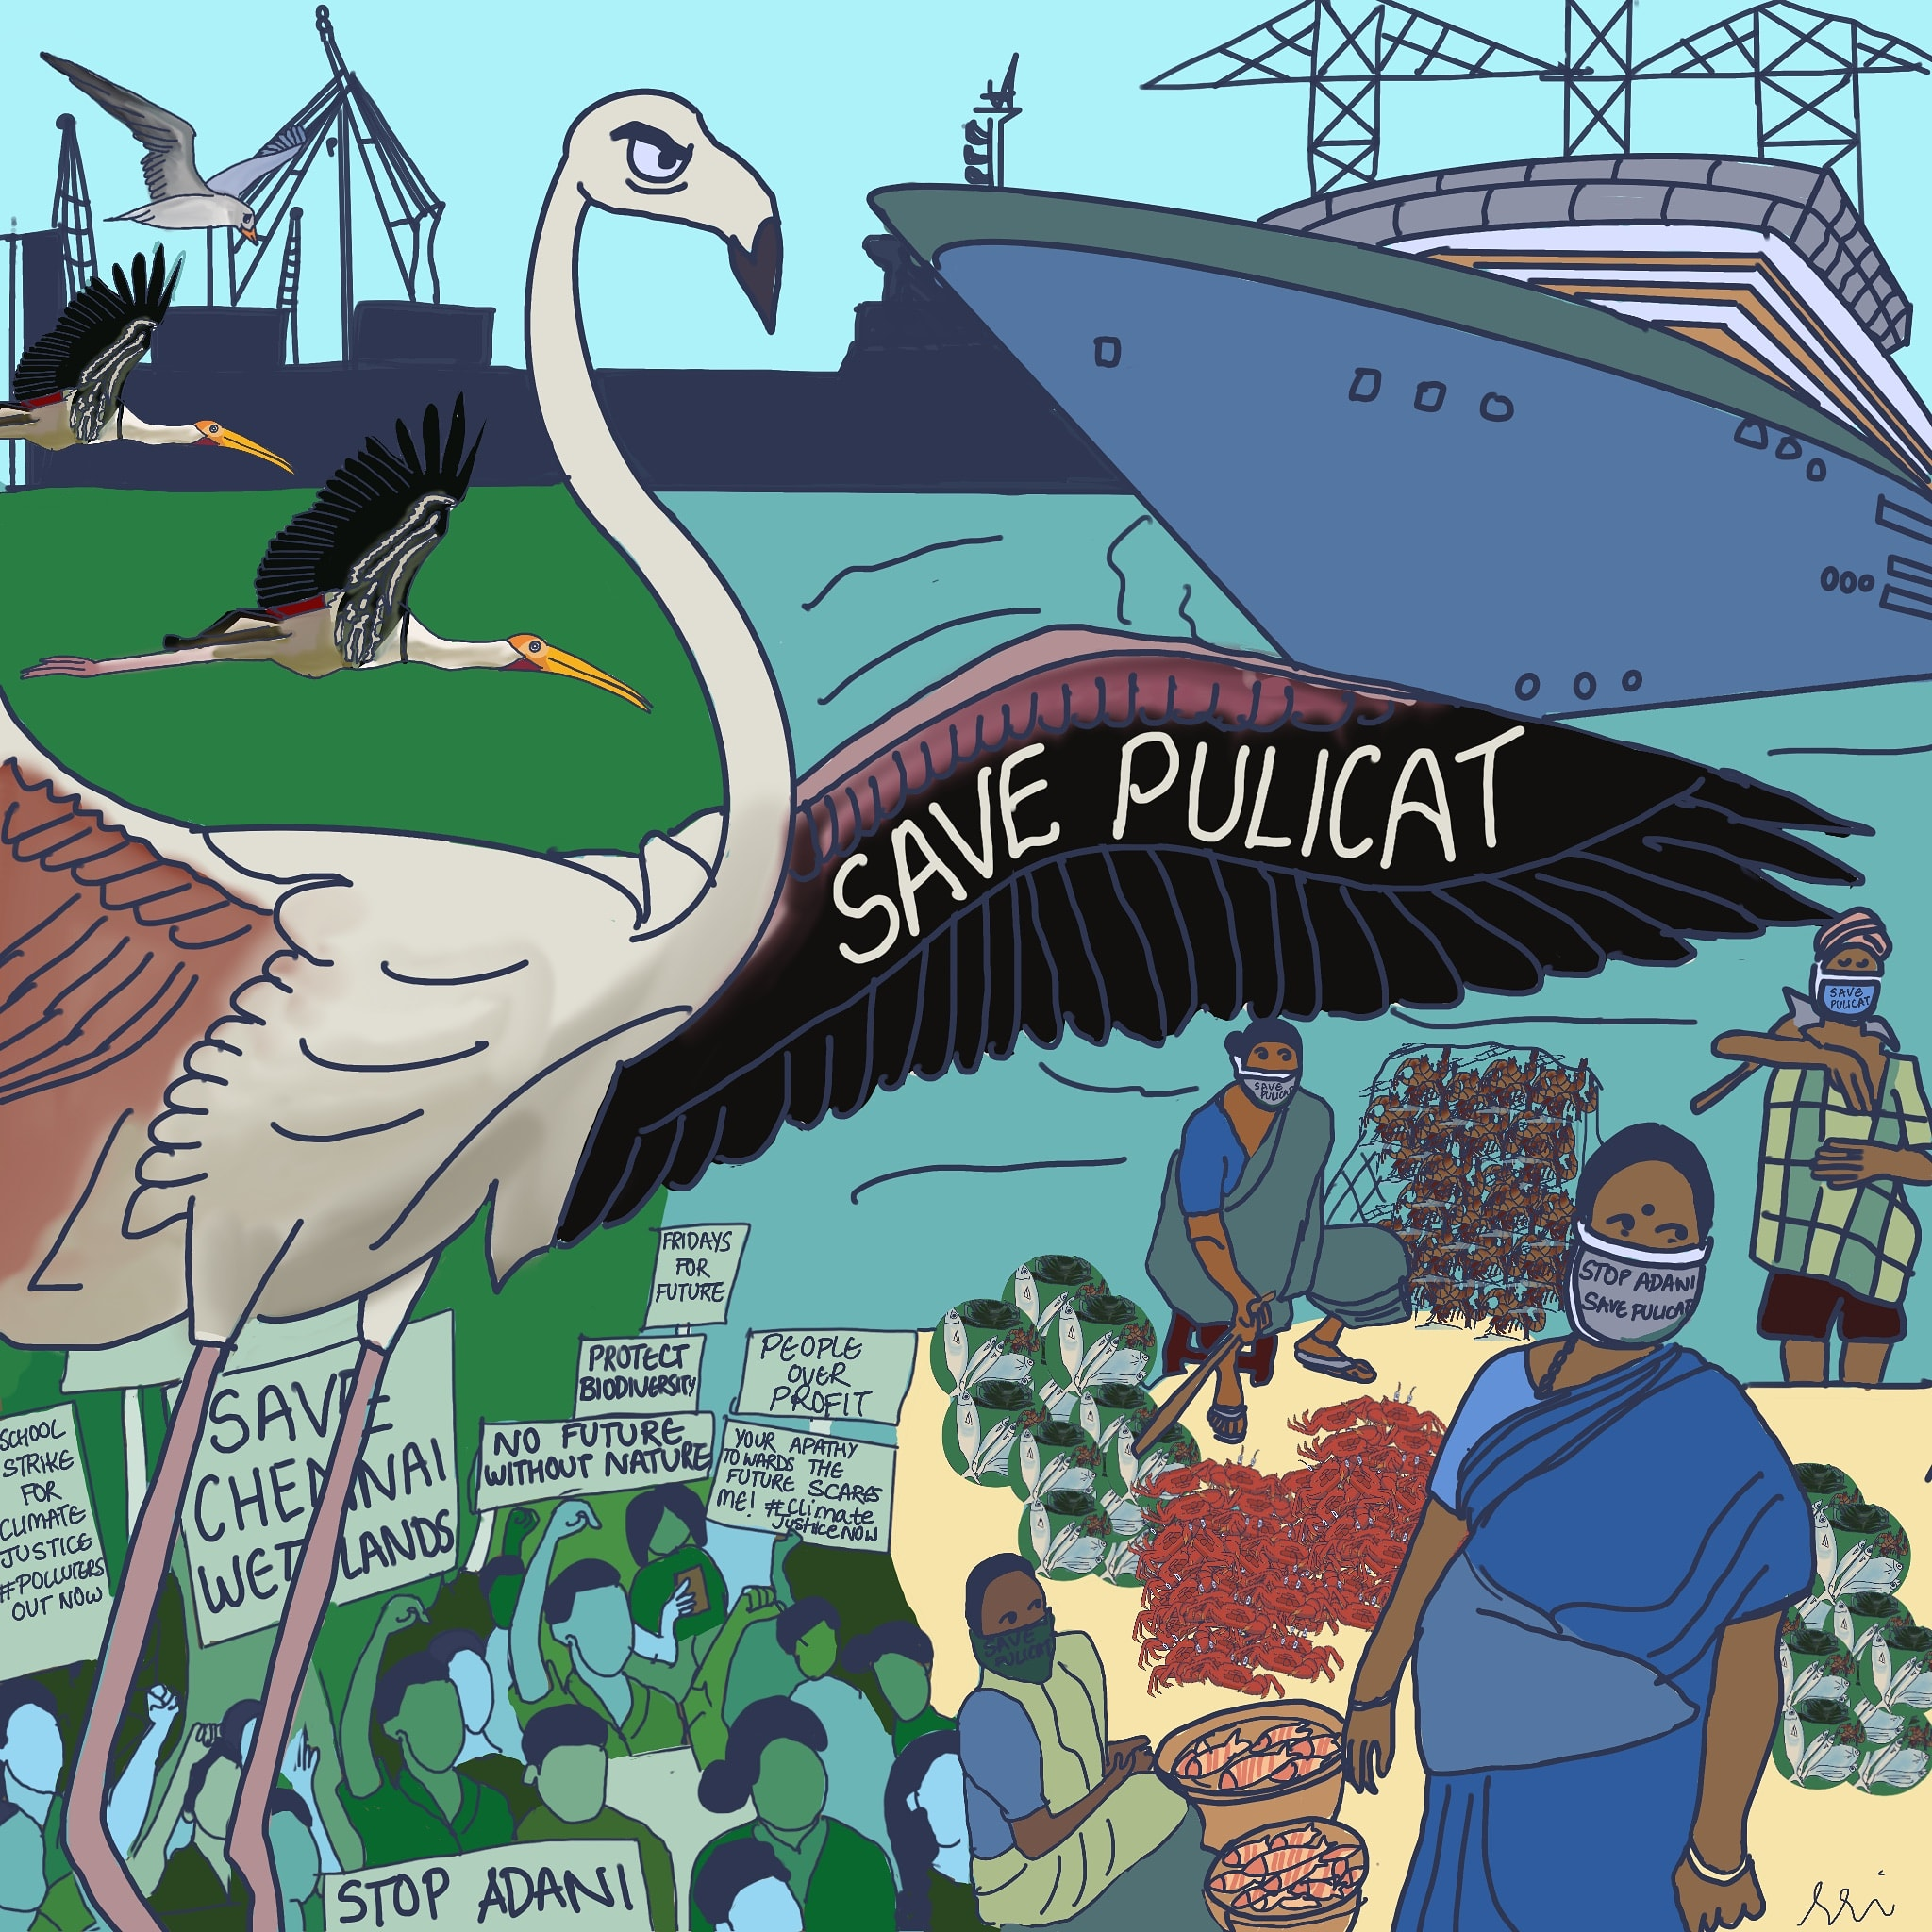 An 'art storm' has depicted Adani's threat to Lake Pulicat. Picture by Sriranjini Raman